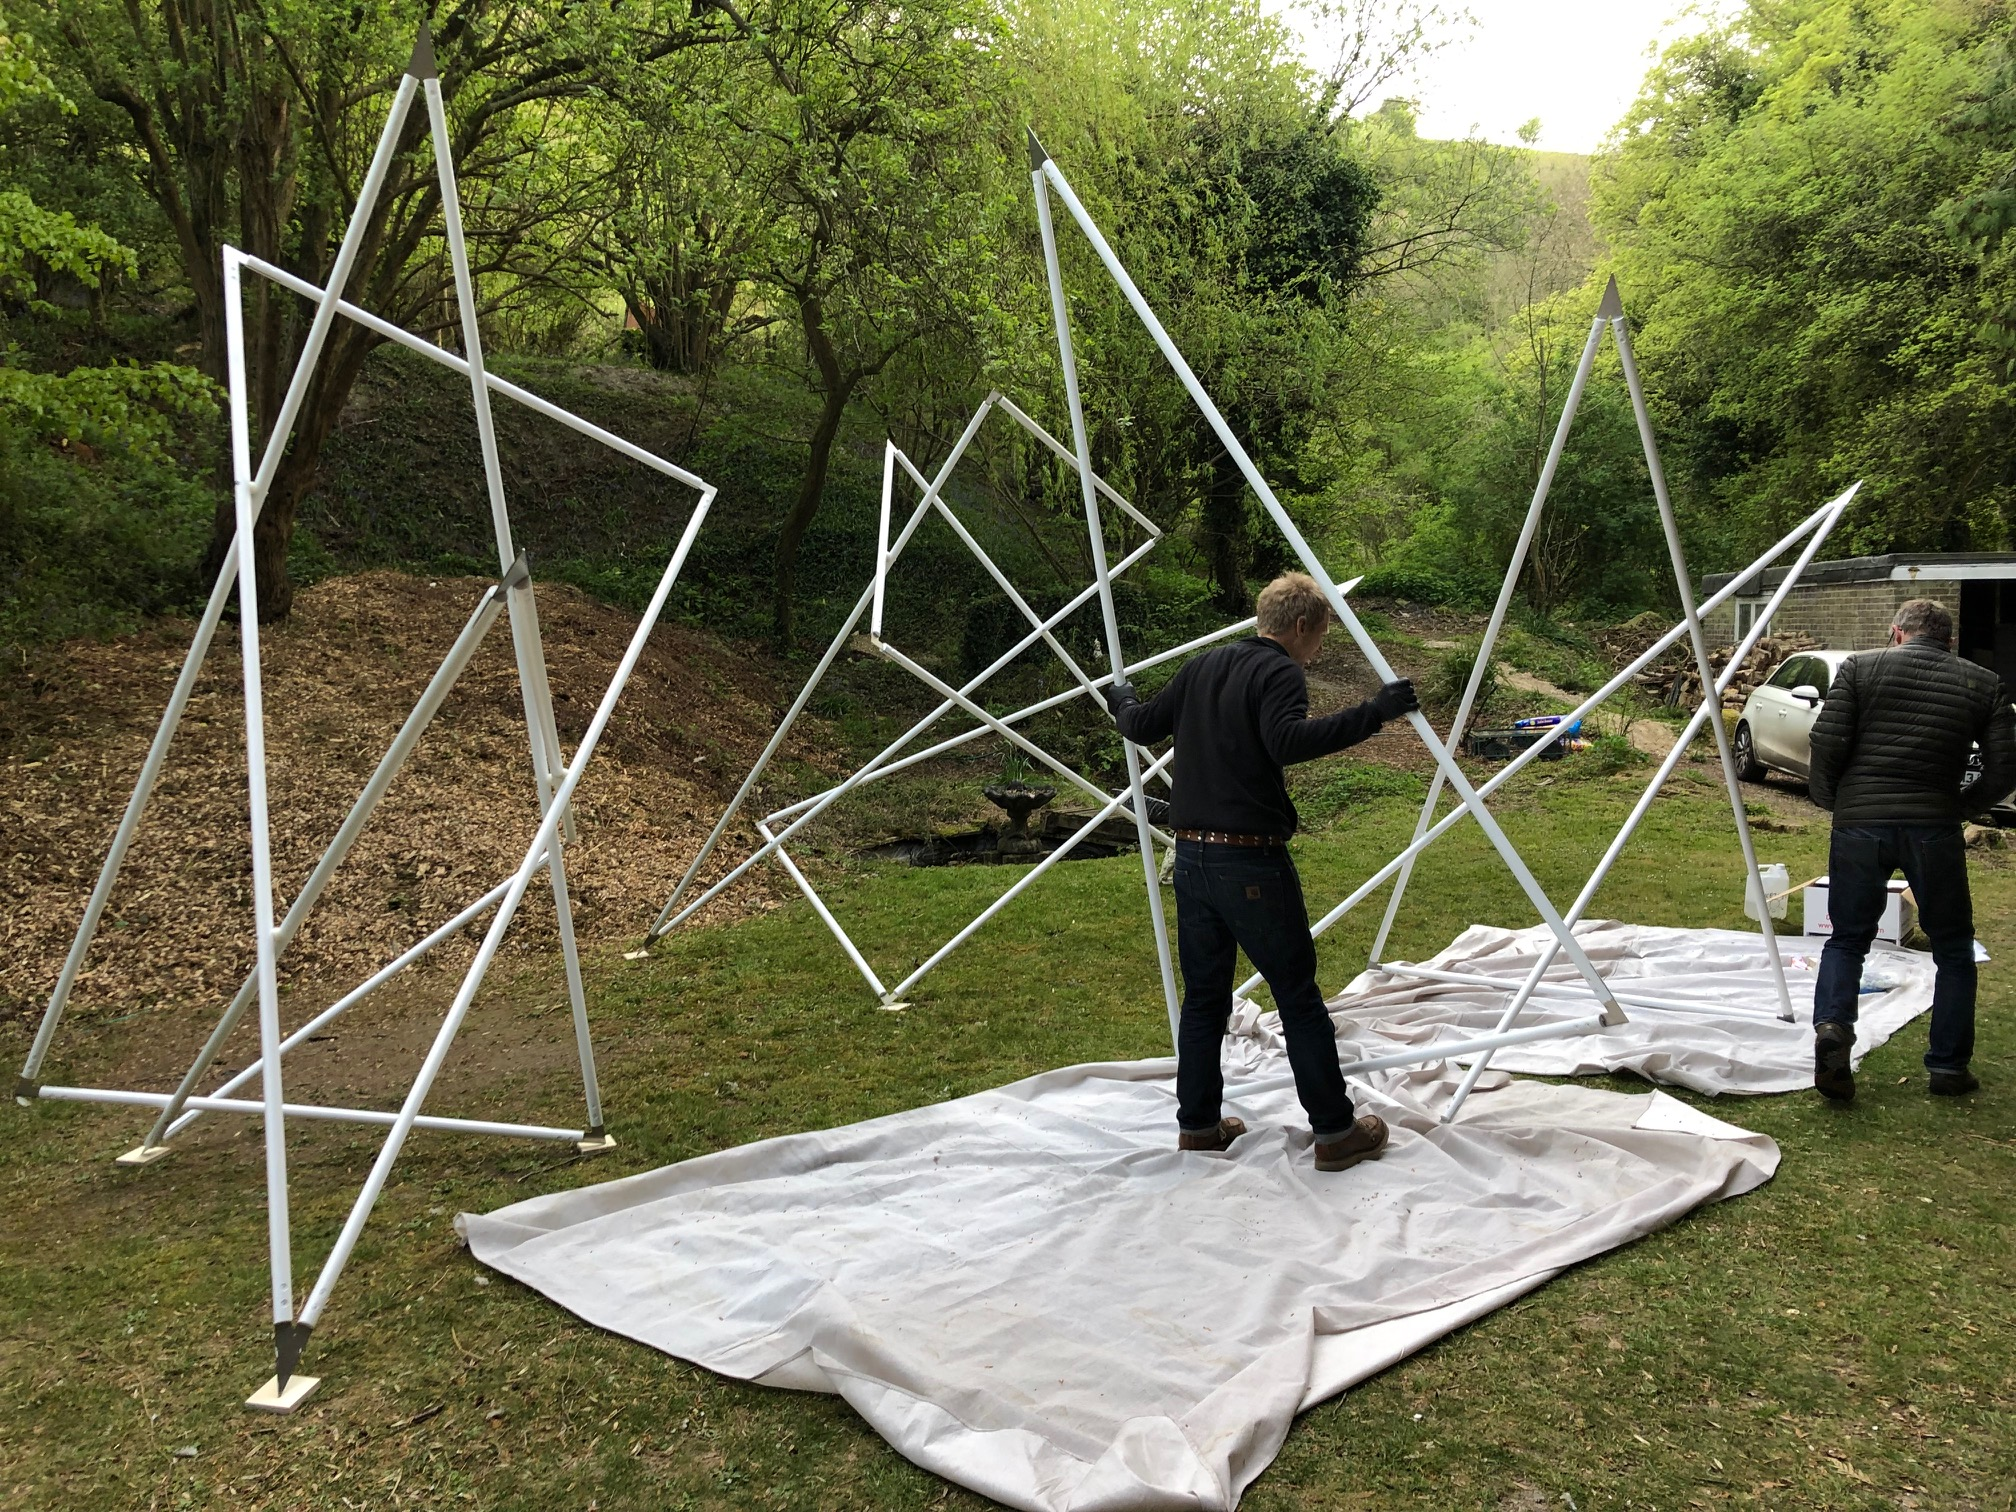 Ivan Clarke and friend having fun assembling the Triangle Experiments